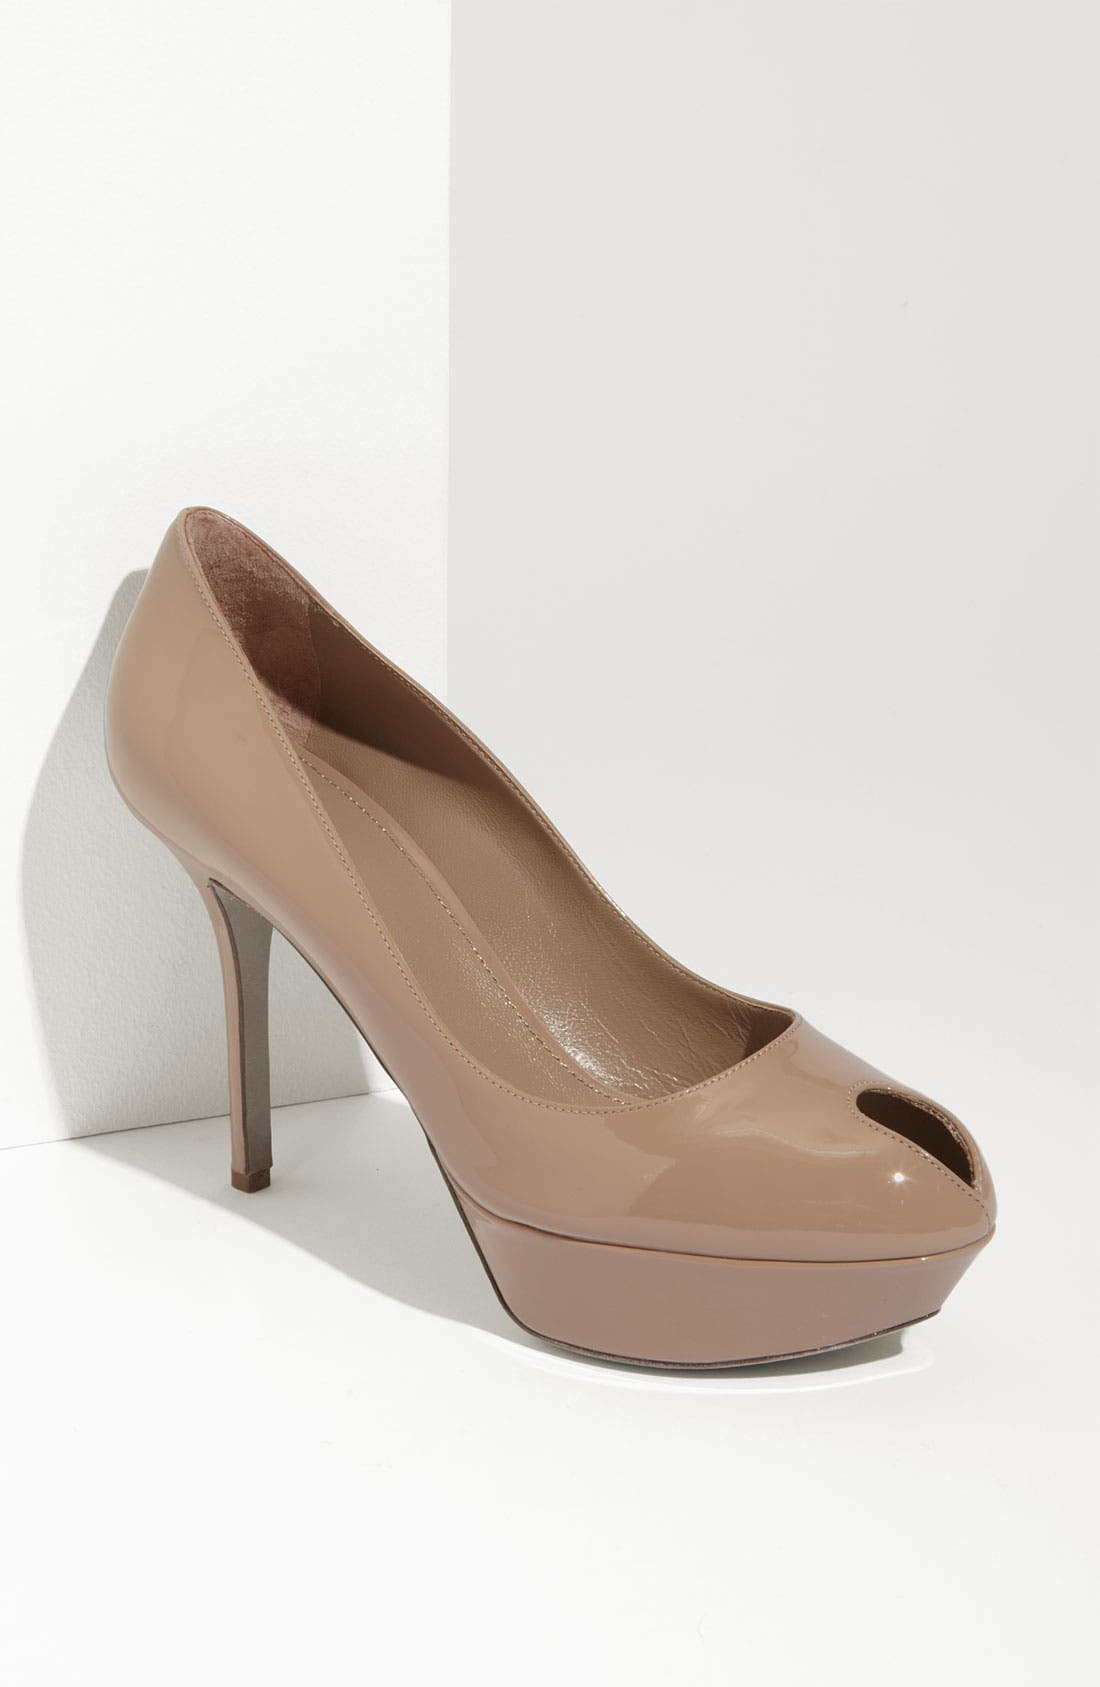 Alternate Image 1 Selected - Sergio Rossi 'Cachet' Platform Pump